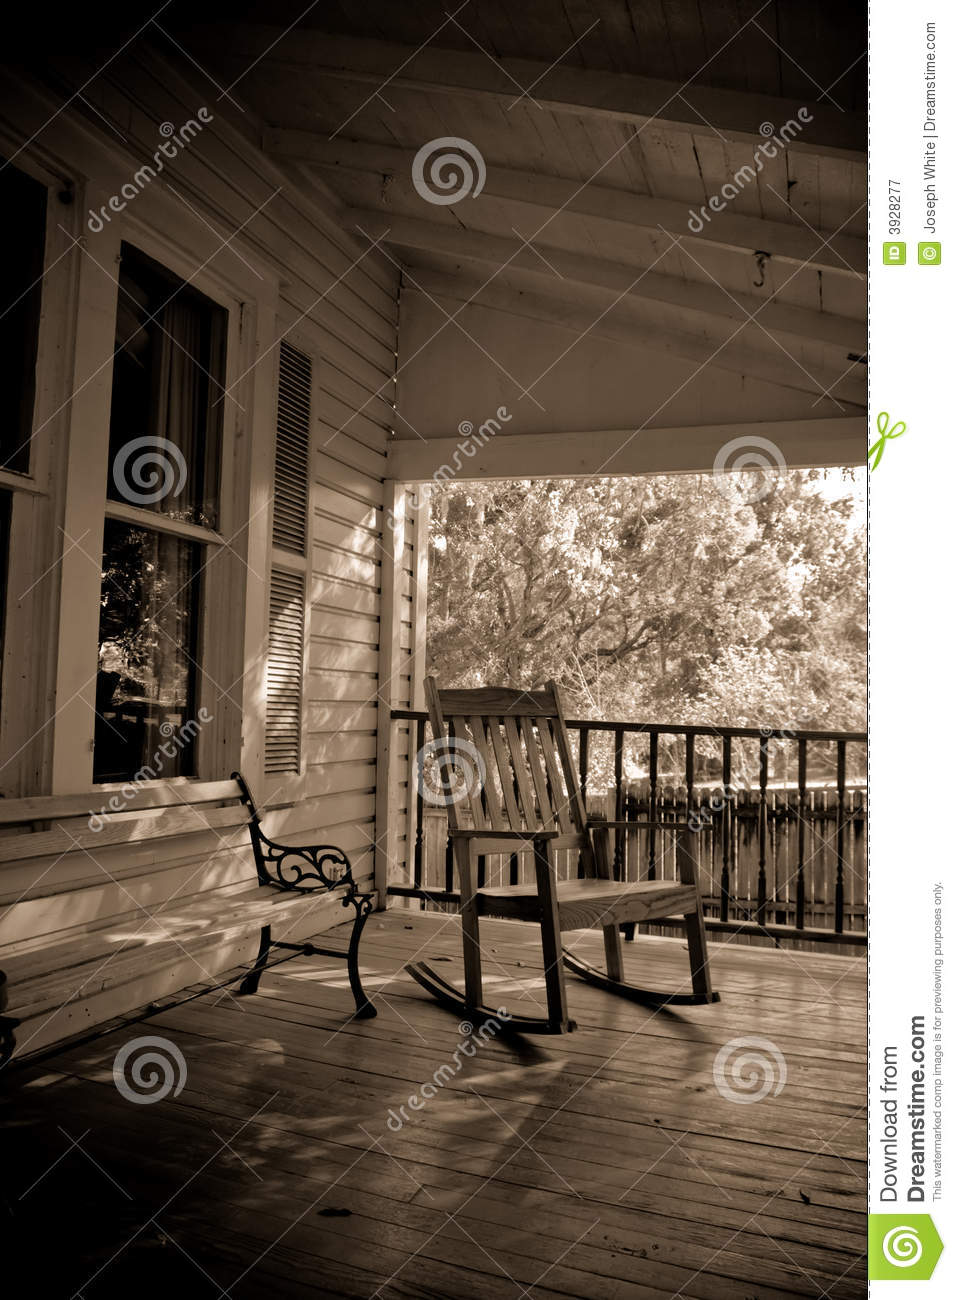 porch bench clipart